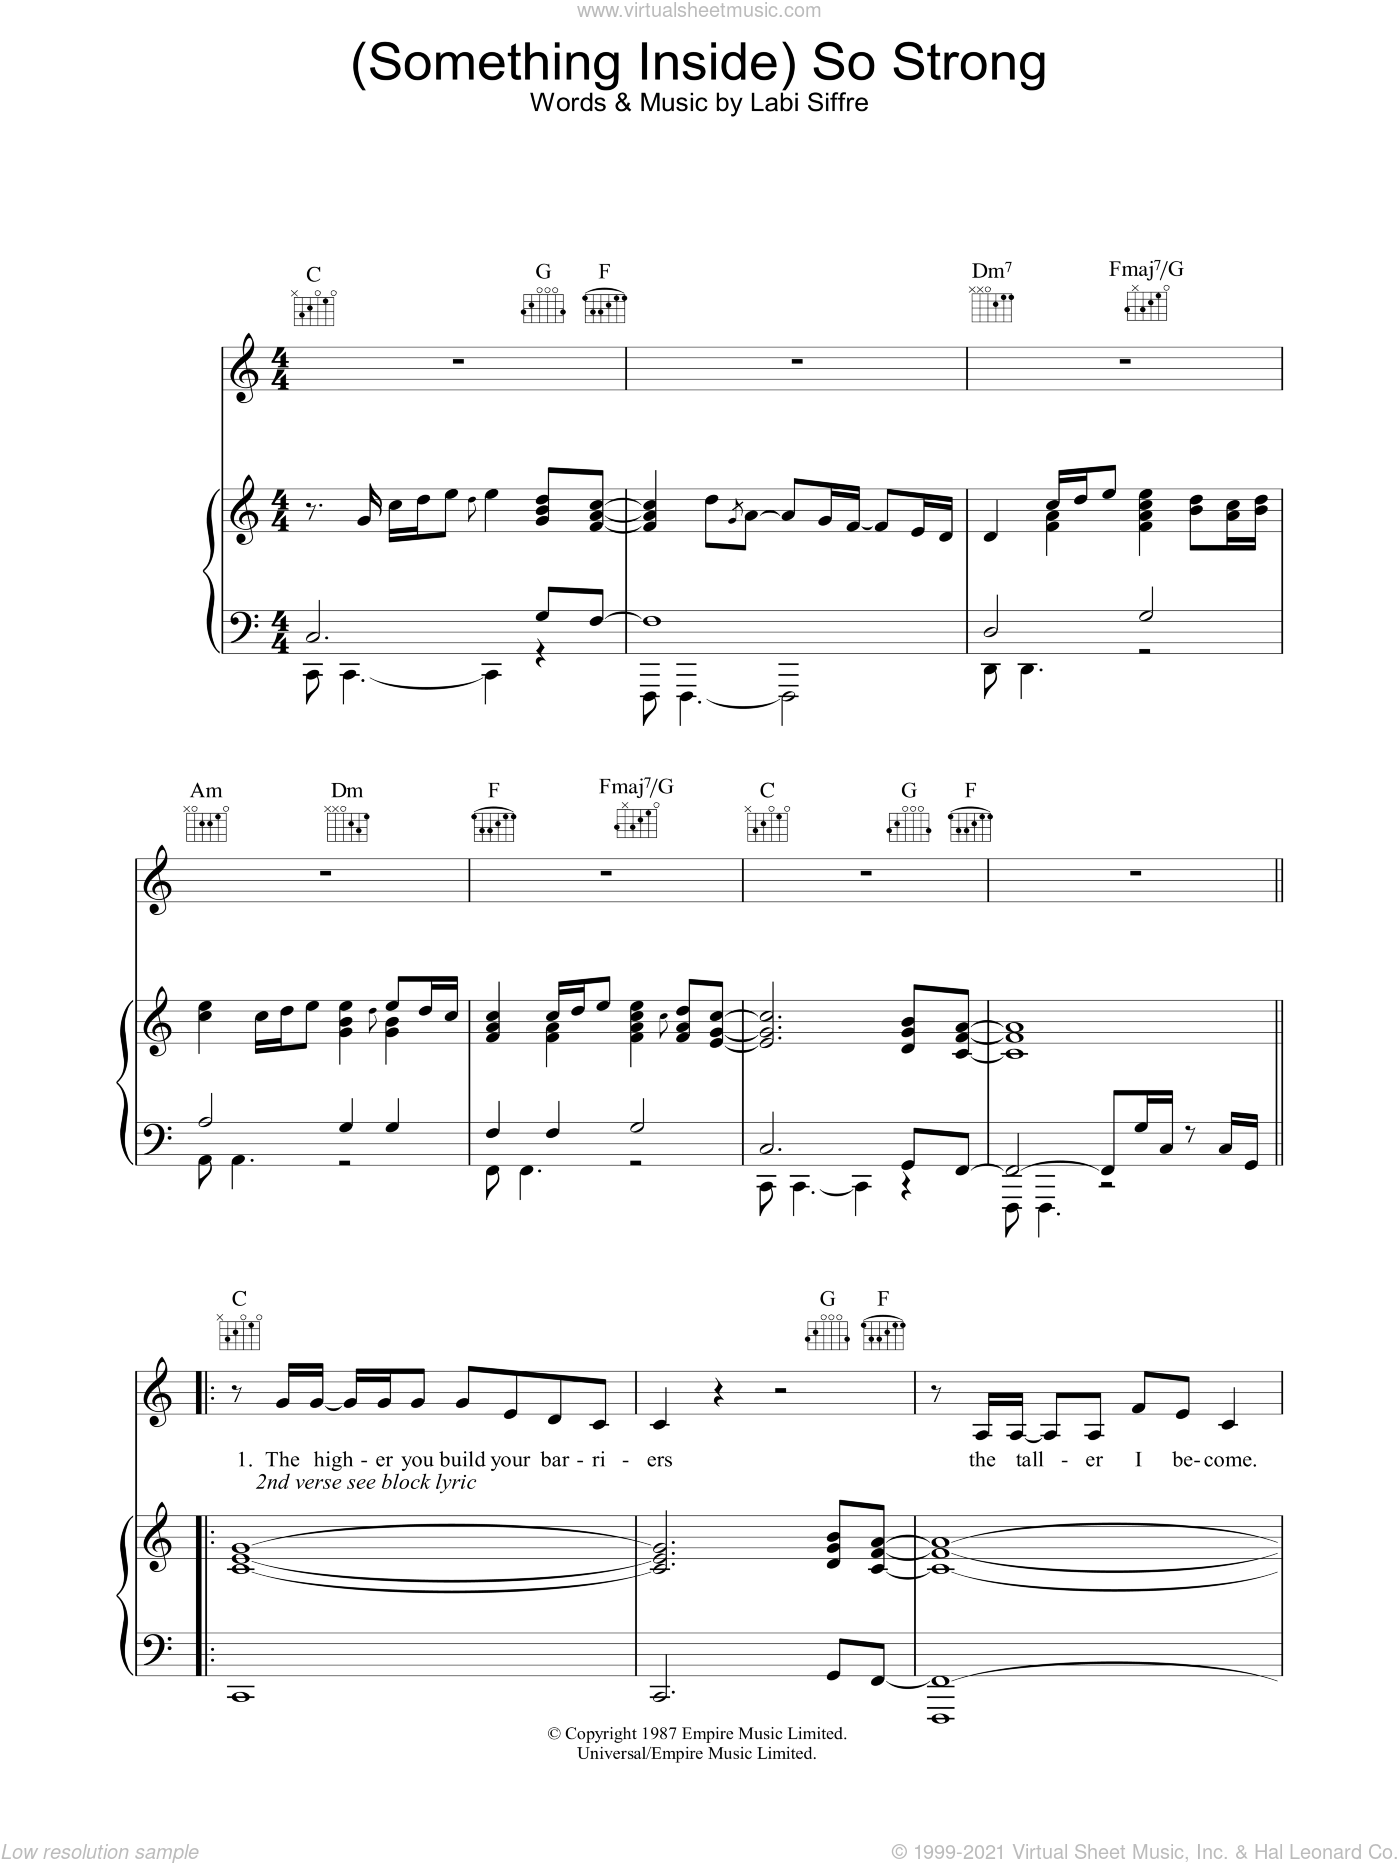 (Something Inside) So Strong sheet music for voice, piano or guitar by Labi Siffre, intermediate skill level